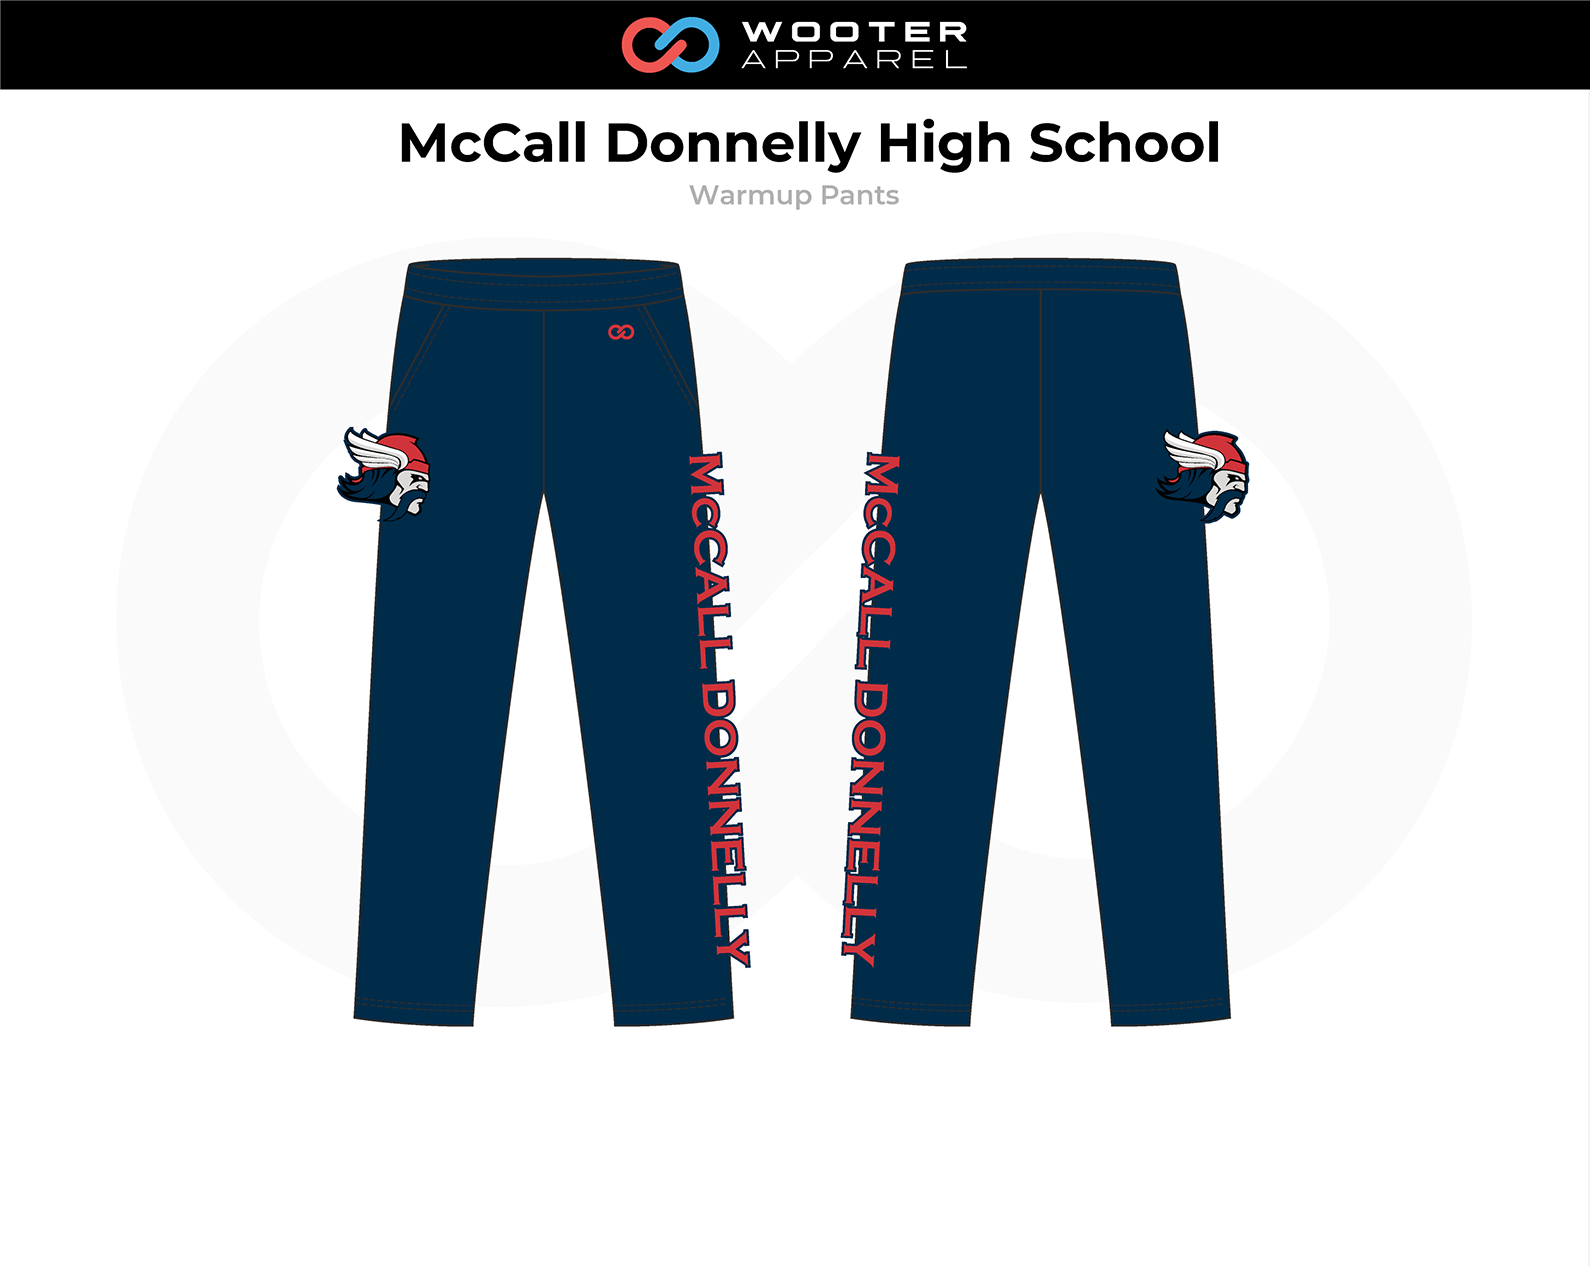 2018-10-25 McCall Donnelly High School Basketball (Golden Tigers) Warmup Pants.png